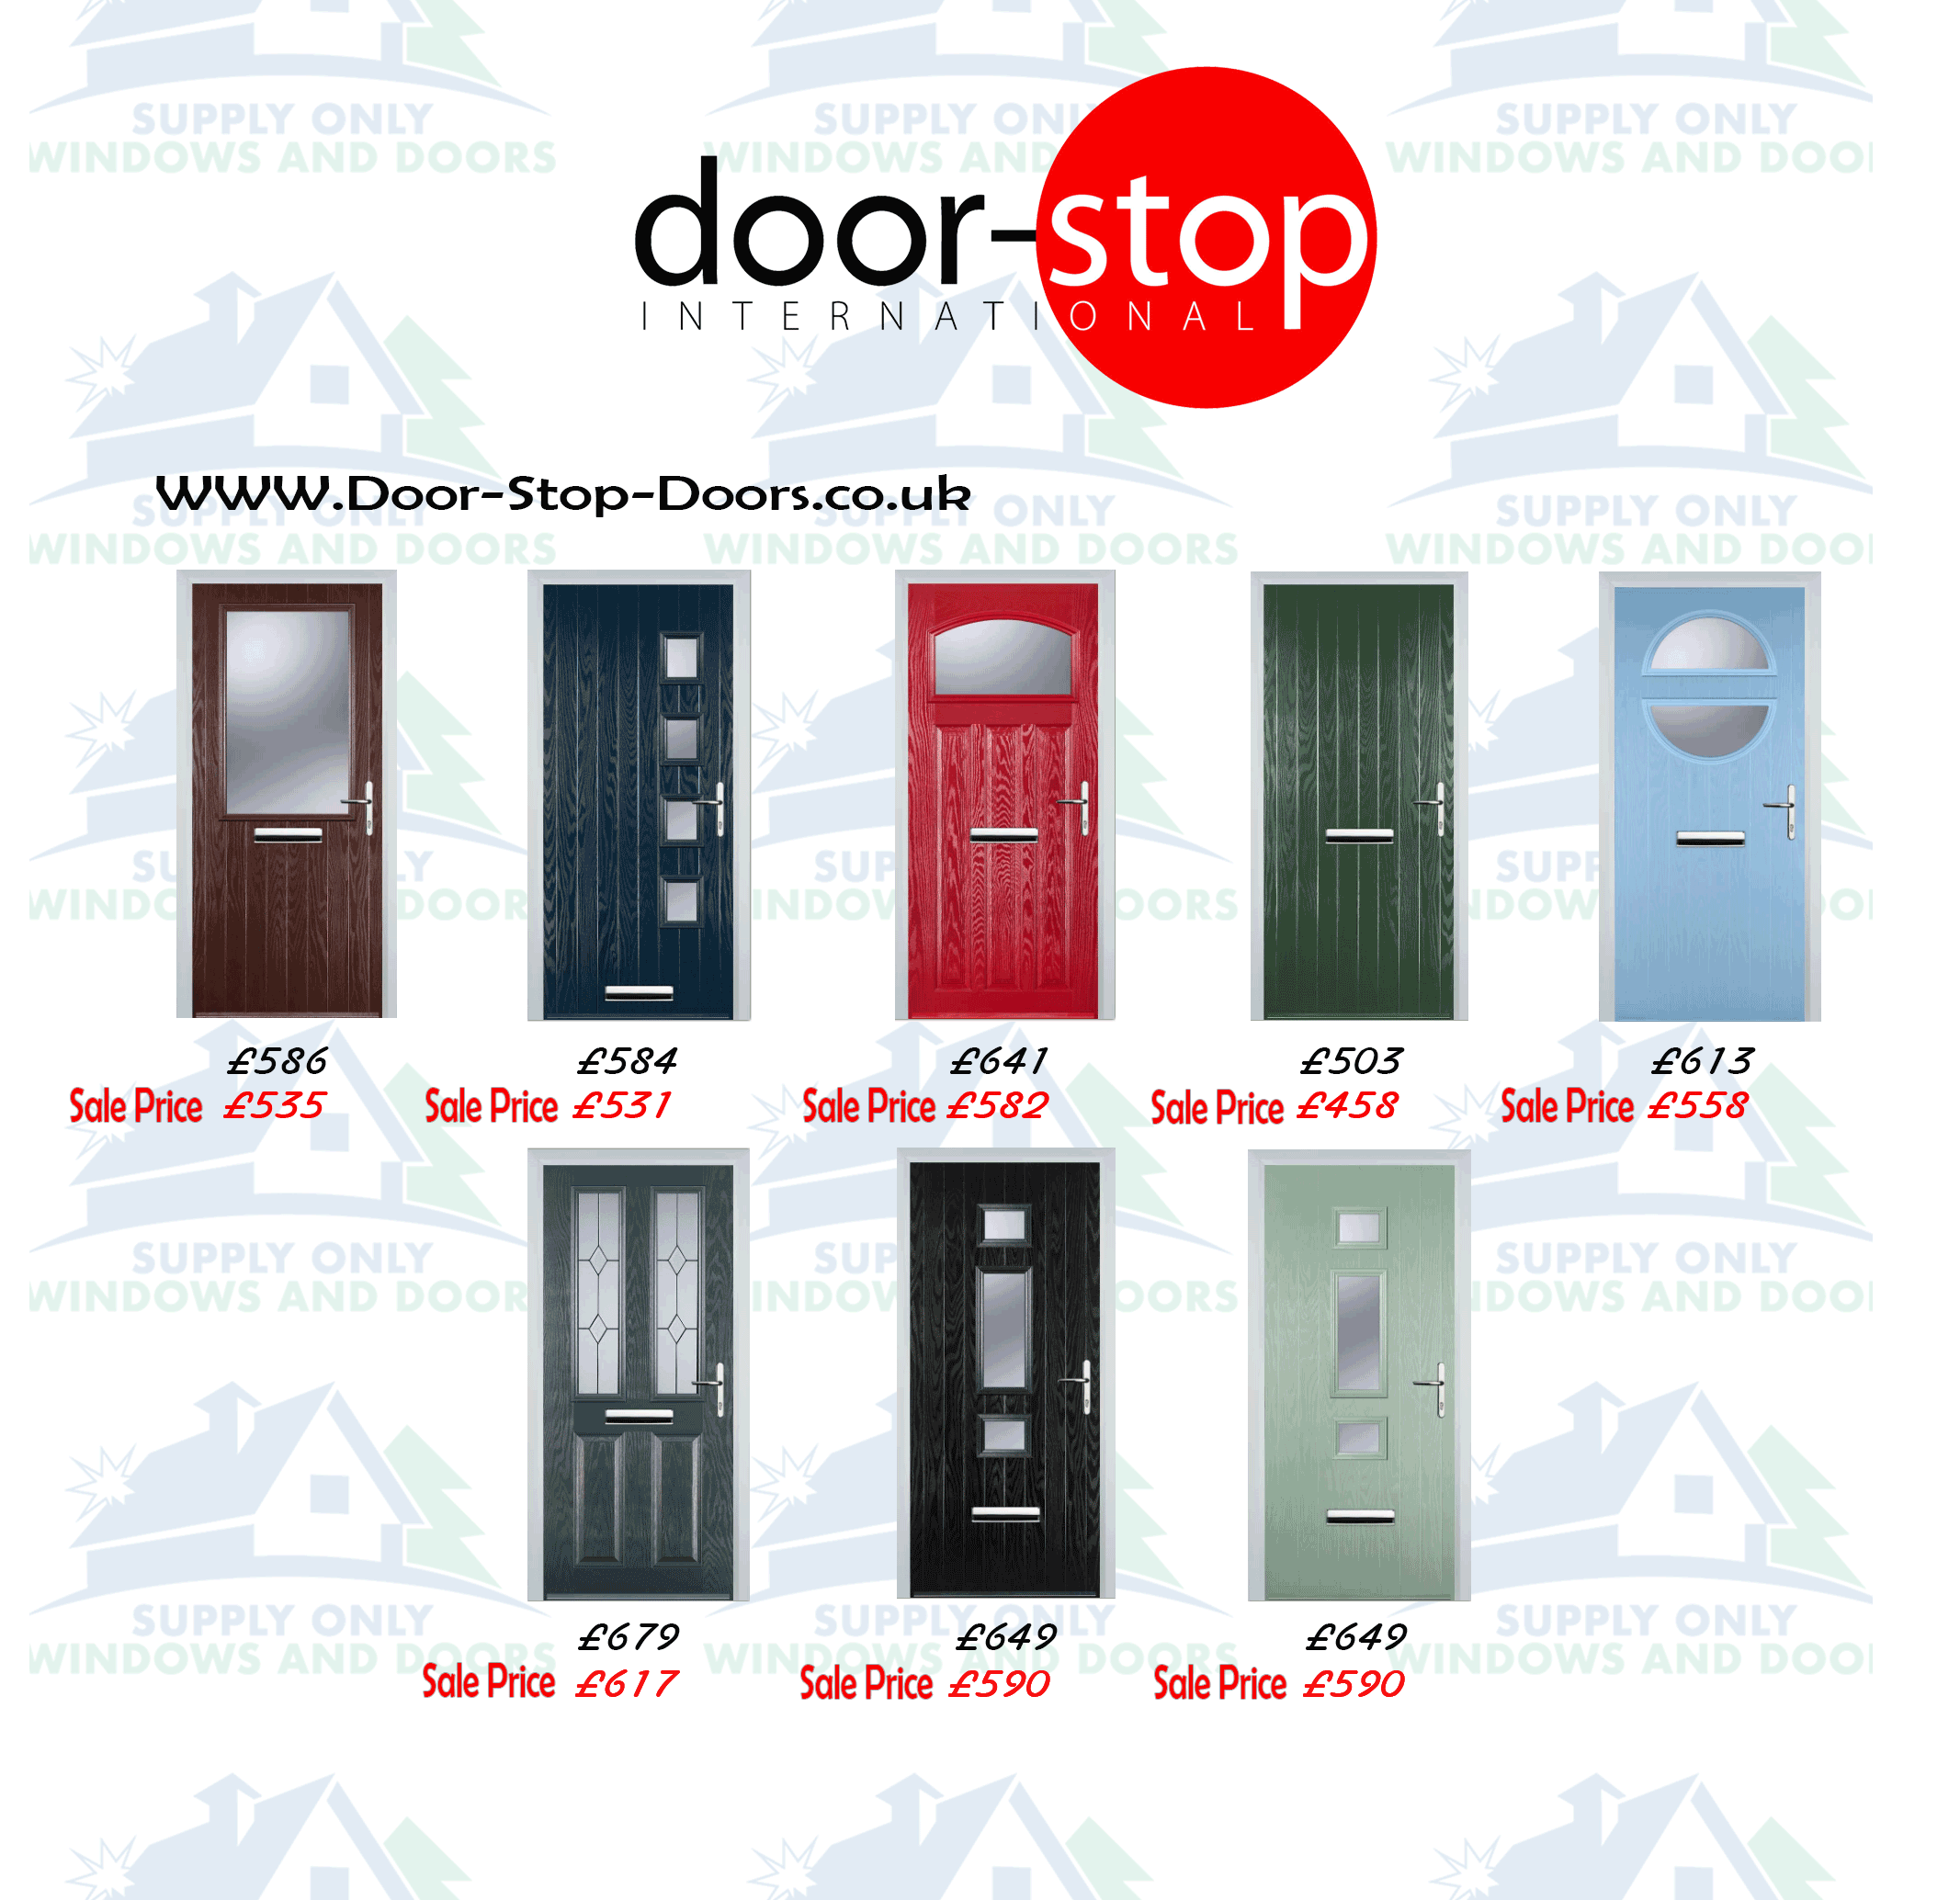 Supply Only Door Stop Doors